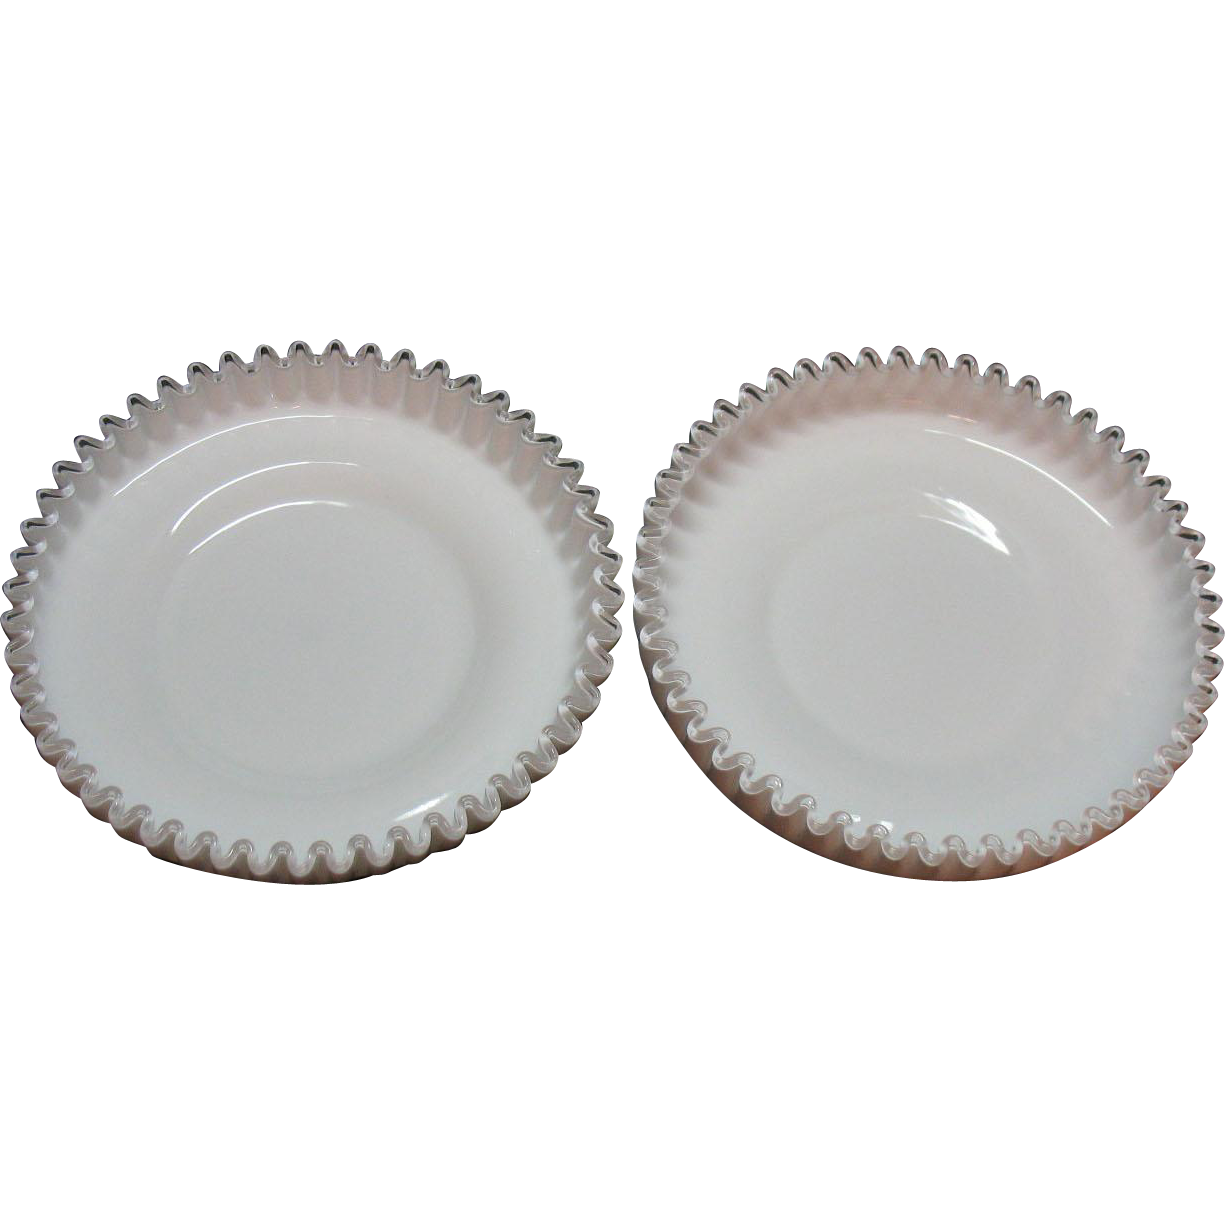 Two Vintage Fenton Milk Glass Silver Crest Shrimp/Chip Bowls 1942-86 like New Condition